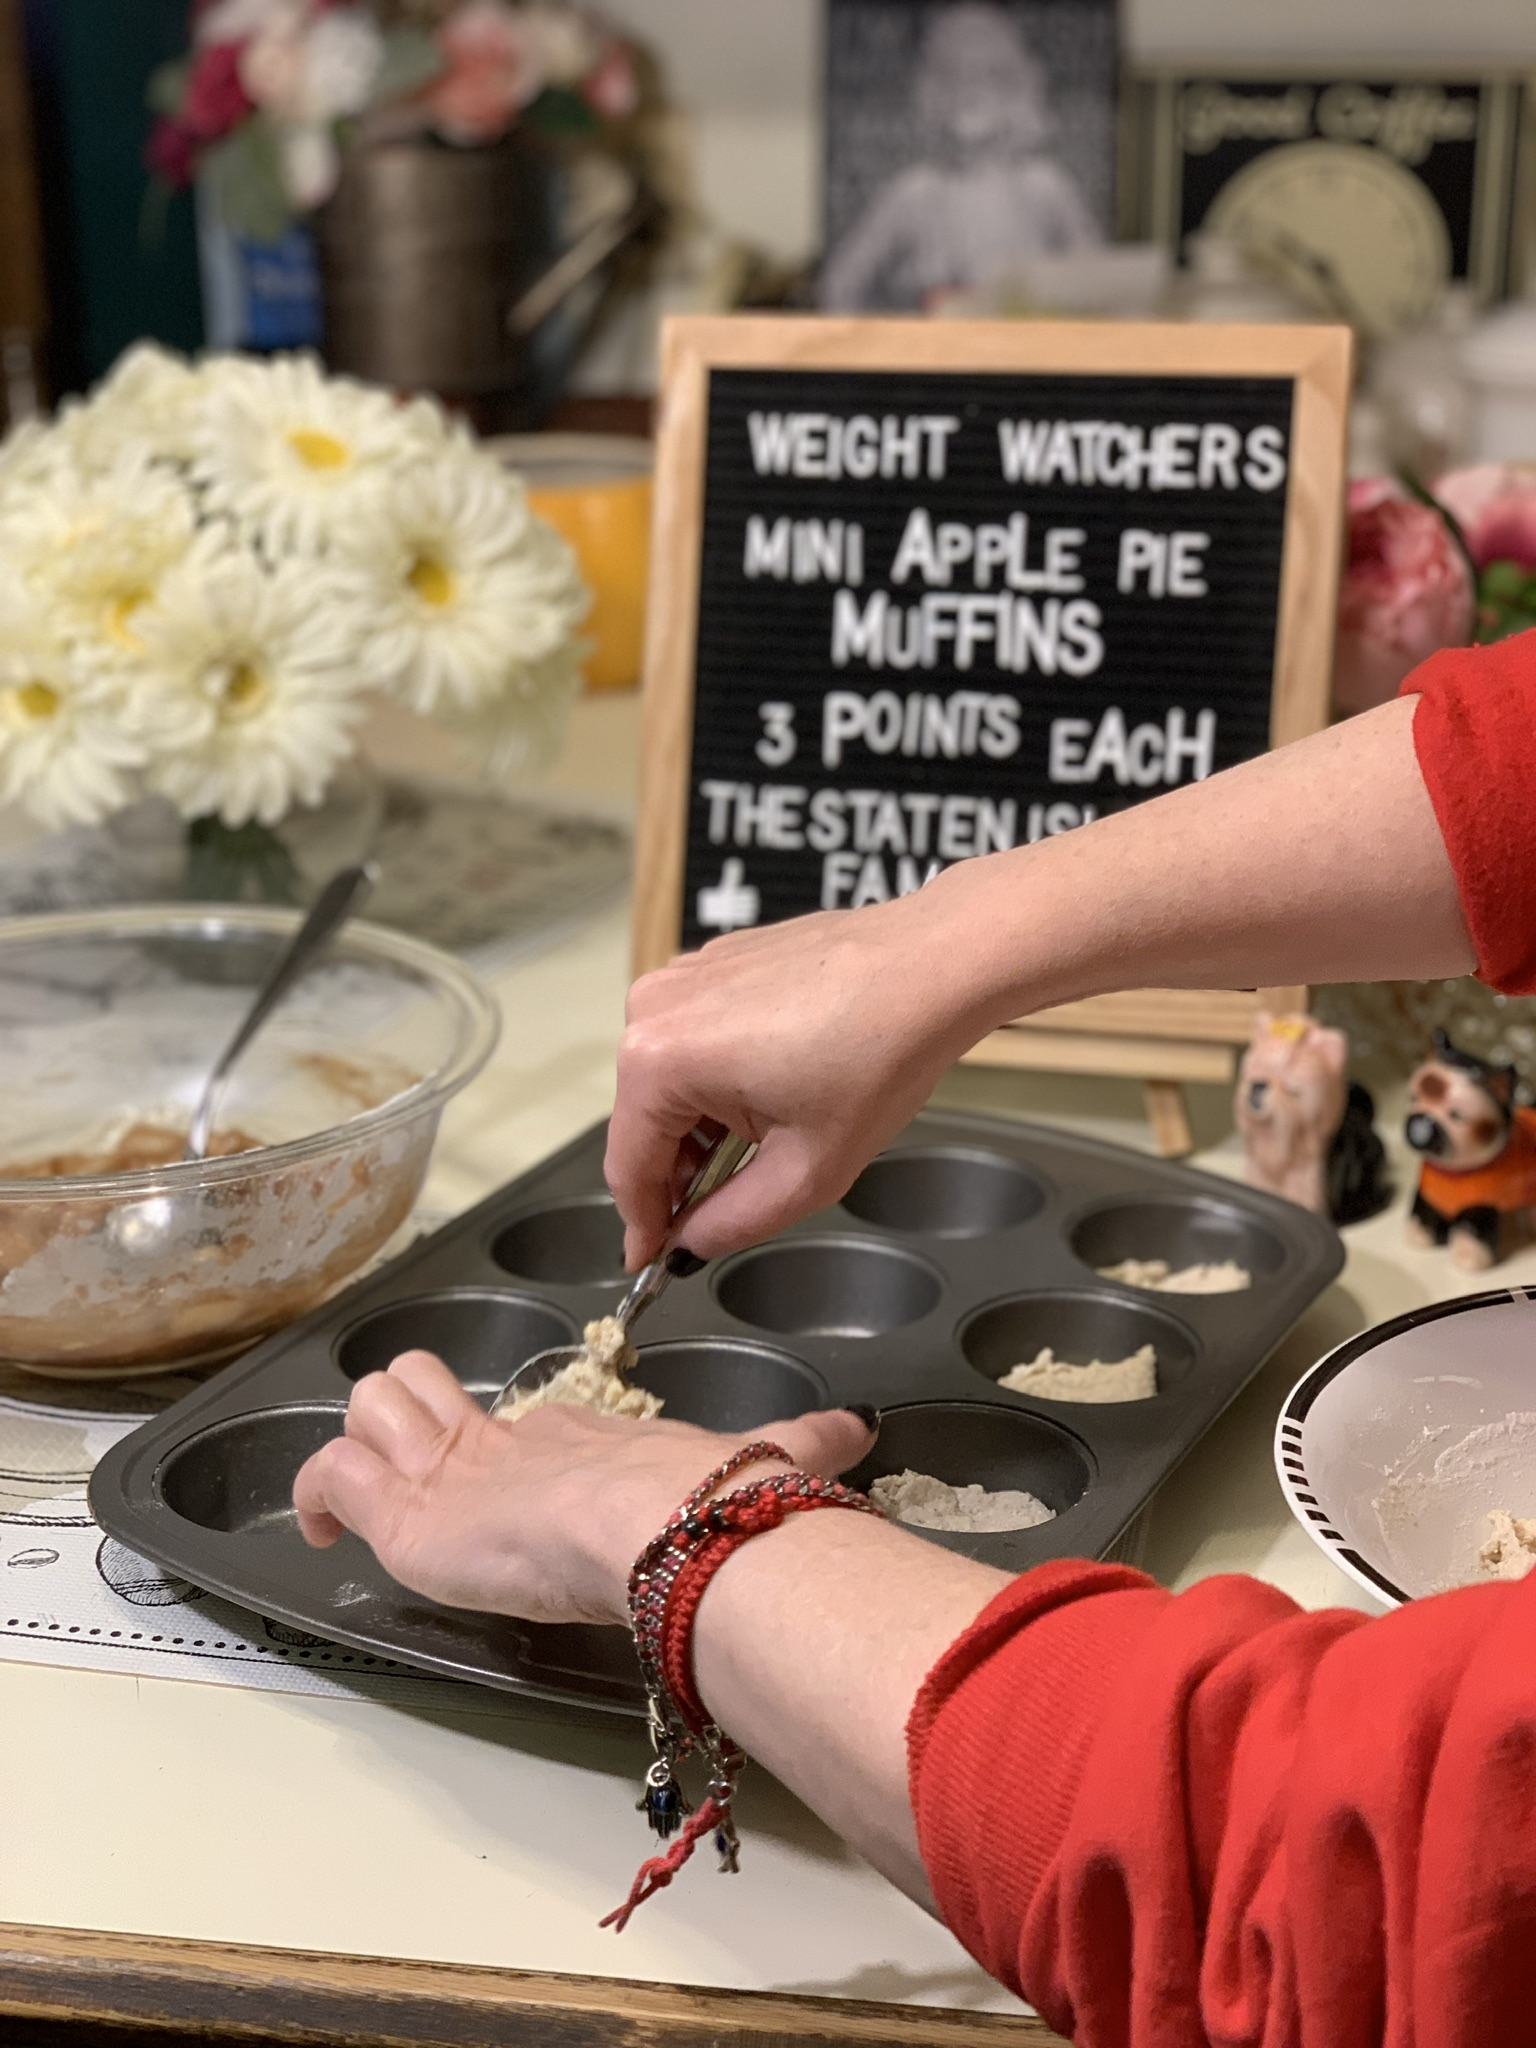 Go team blue 💙these weight watchers mini apple pie muffins are the perfect dessert! and with their made from scratch doughy crust they are super filling! get the recipe for these three point treats here: https://www.thestatenislandfamily.com/weight-watchers-mini-apple-pie-muffins/